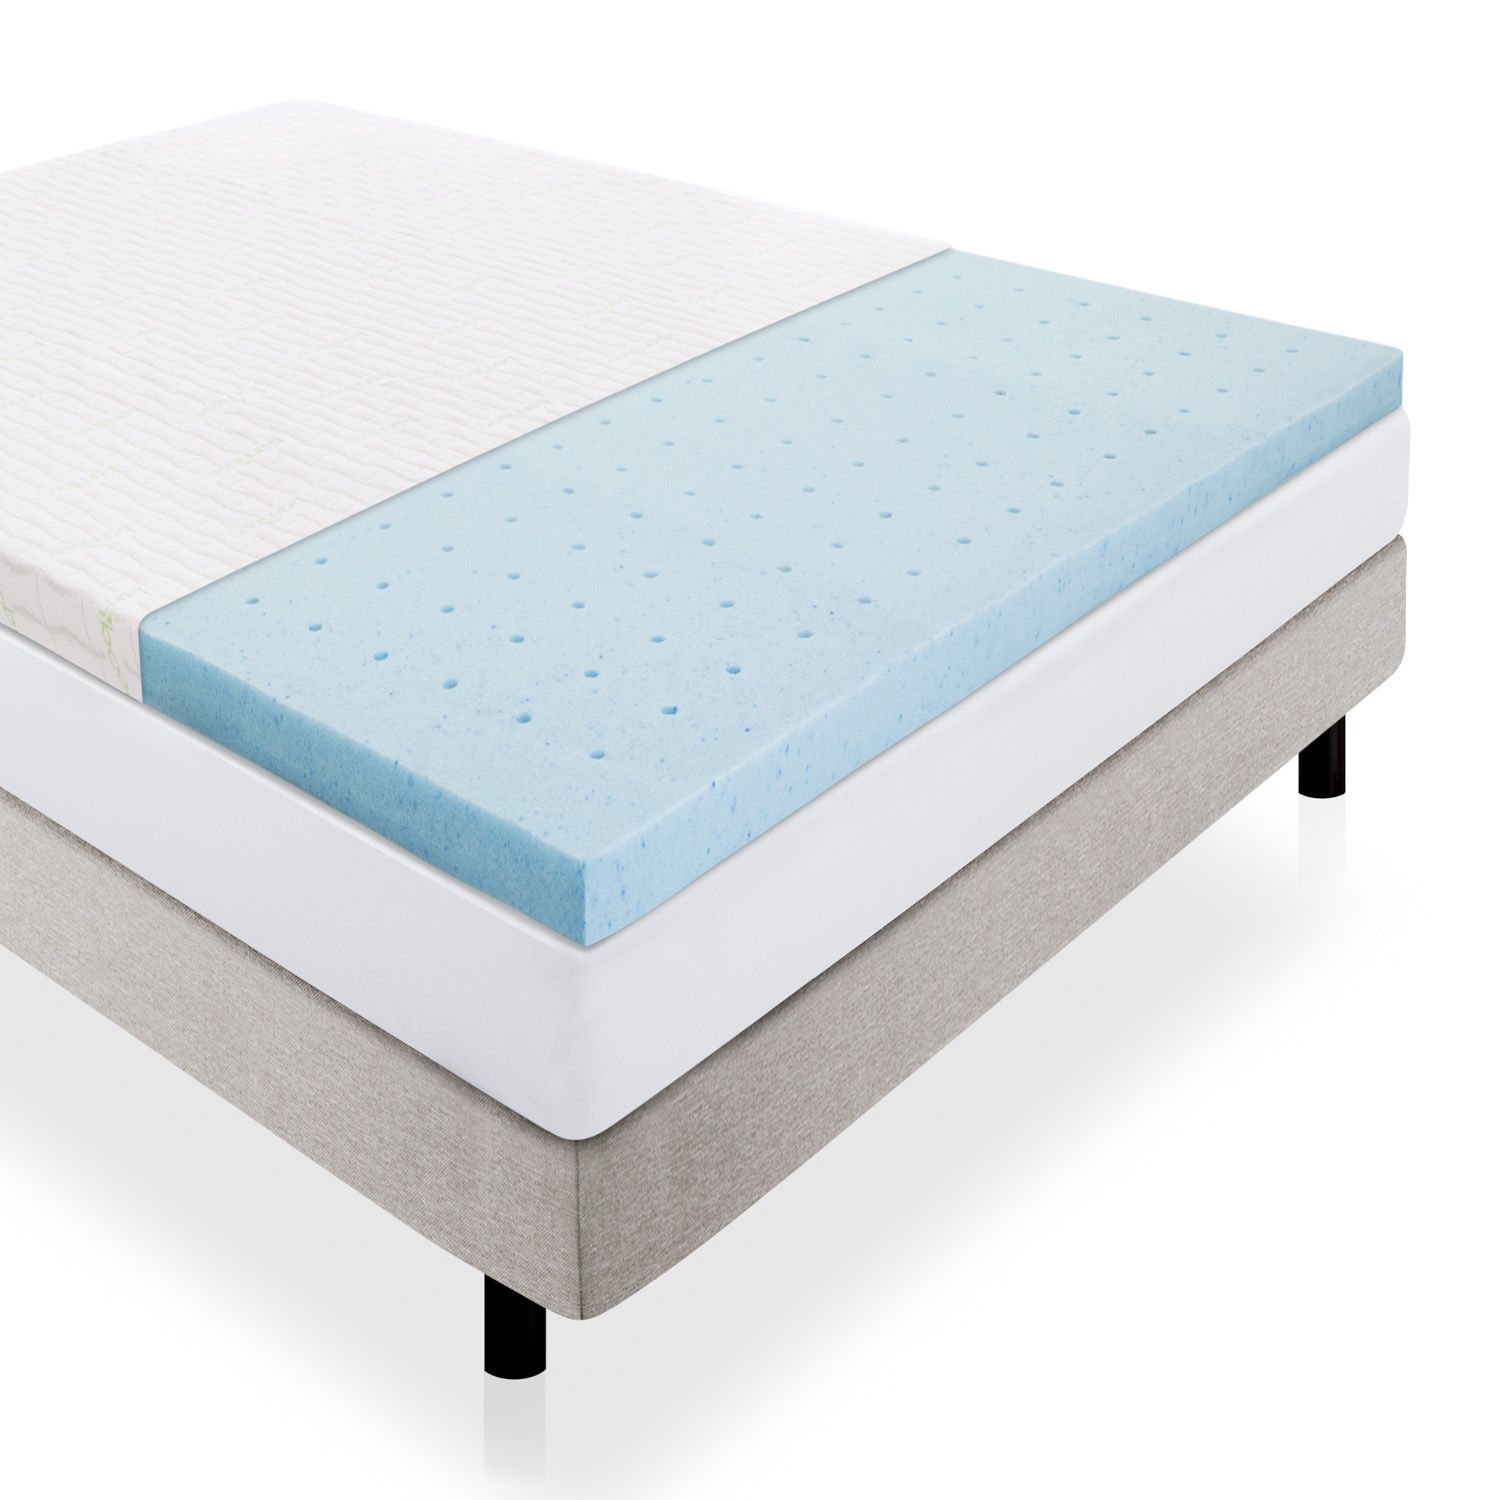 Pillow Top Mattress Covers Cool This 25 Inch Thick Gelinfused Memory Foam Mattress Topper Will